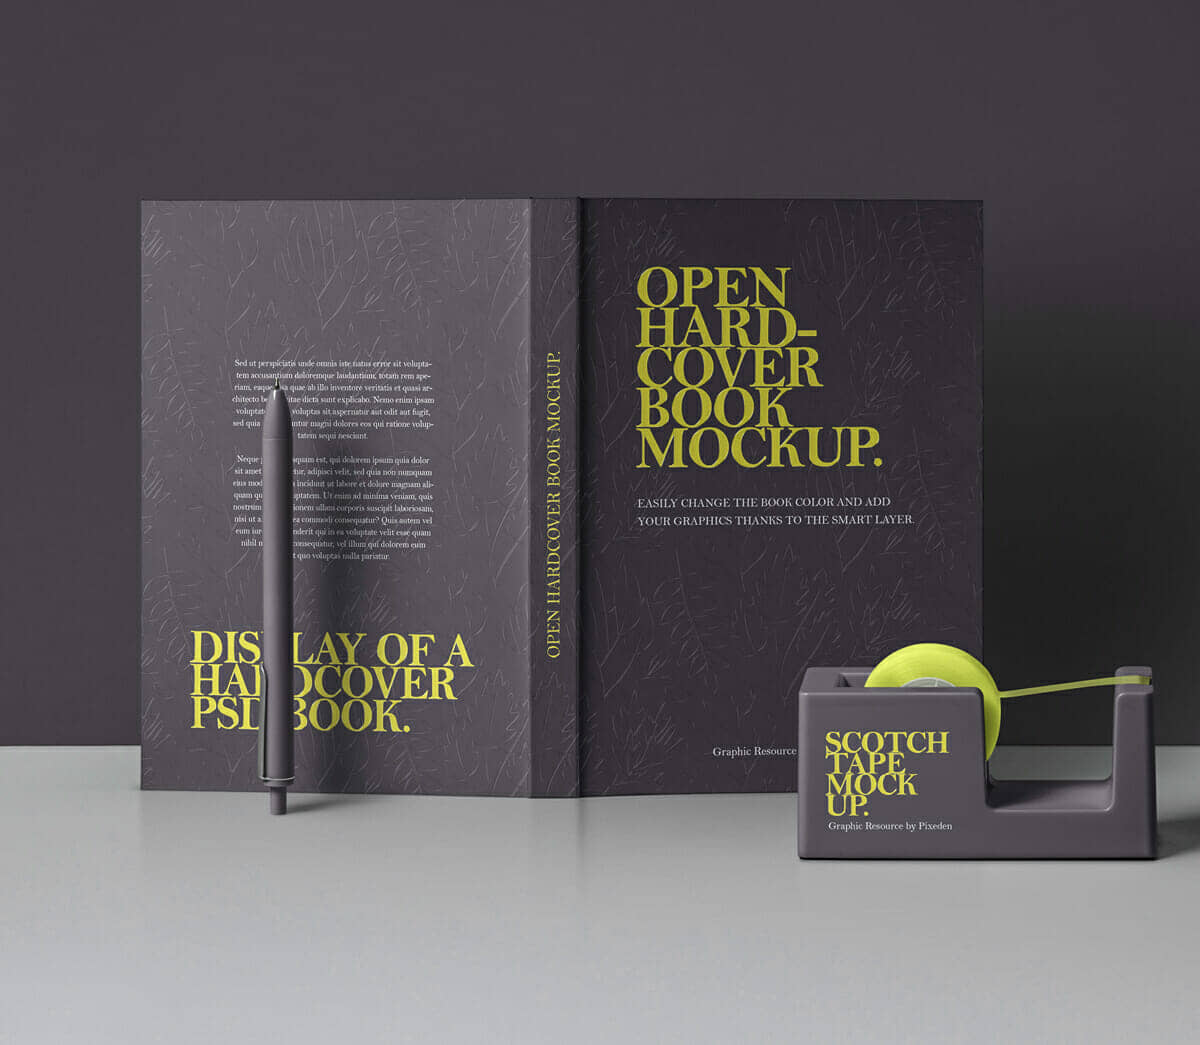 Open Hardcover Book With Scotch Tape Mockup